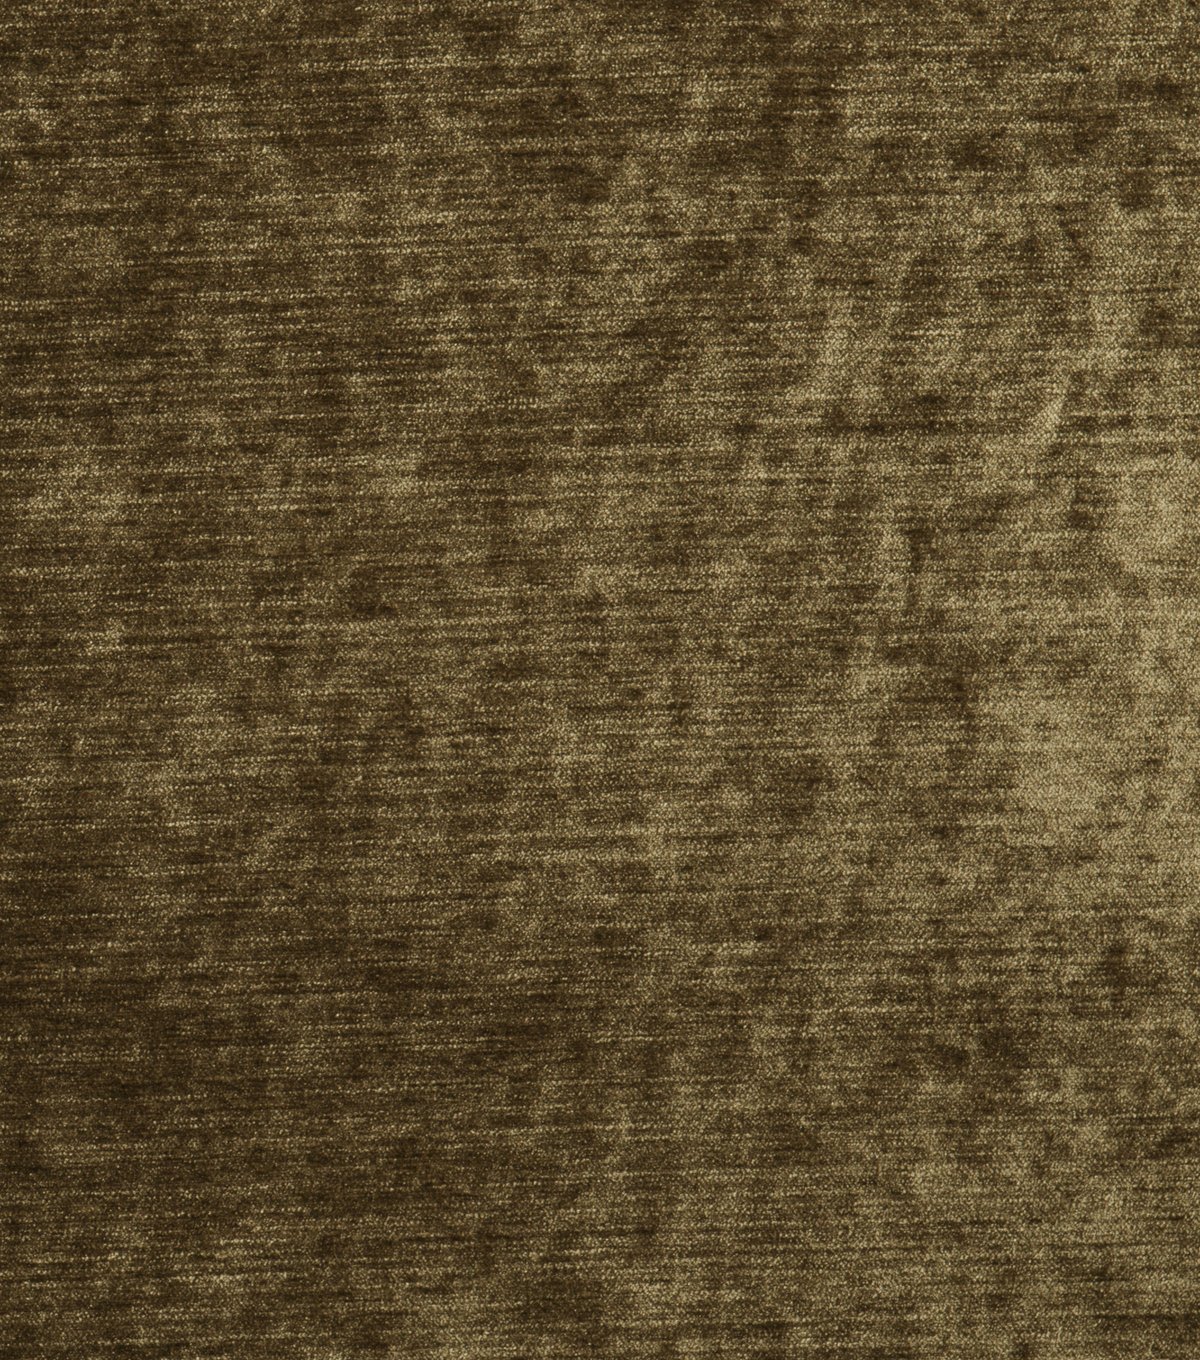 Home Decor 8x8 Fabric Swatch-Eaton Square Lamode Toffee